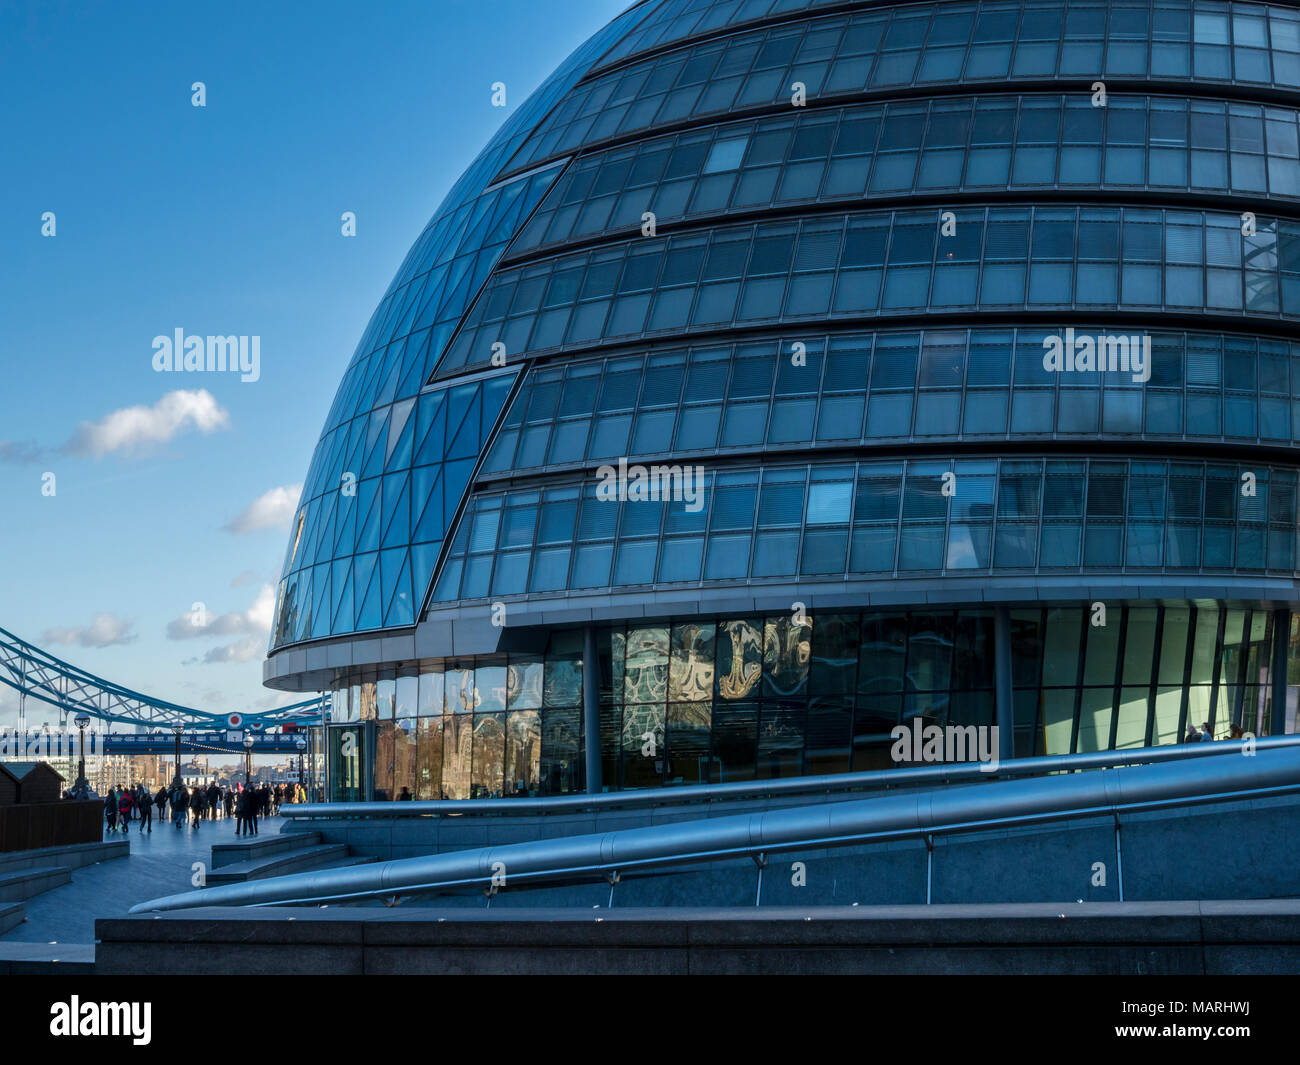 London City Hall, the location of the London Greater Authority, the London Assembly and the  Mayor of London offices, London, UK. - Stock Image